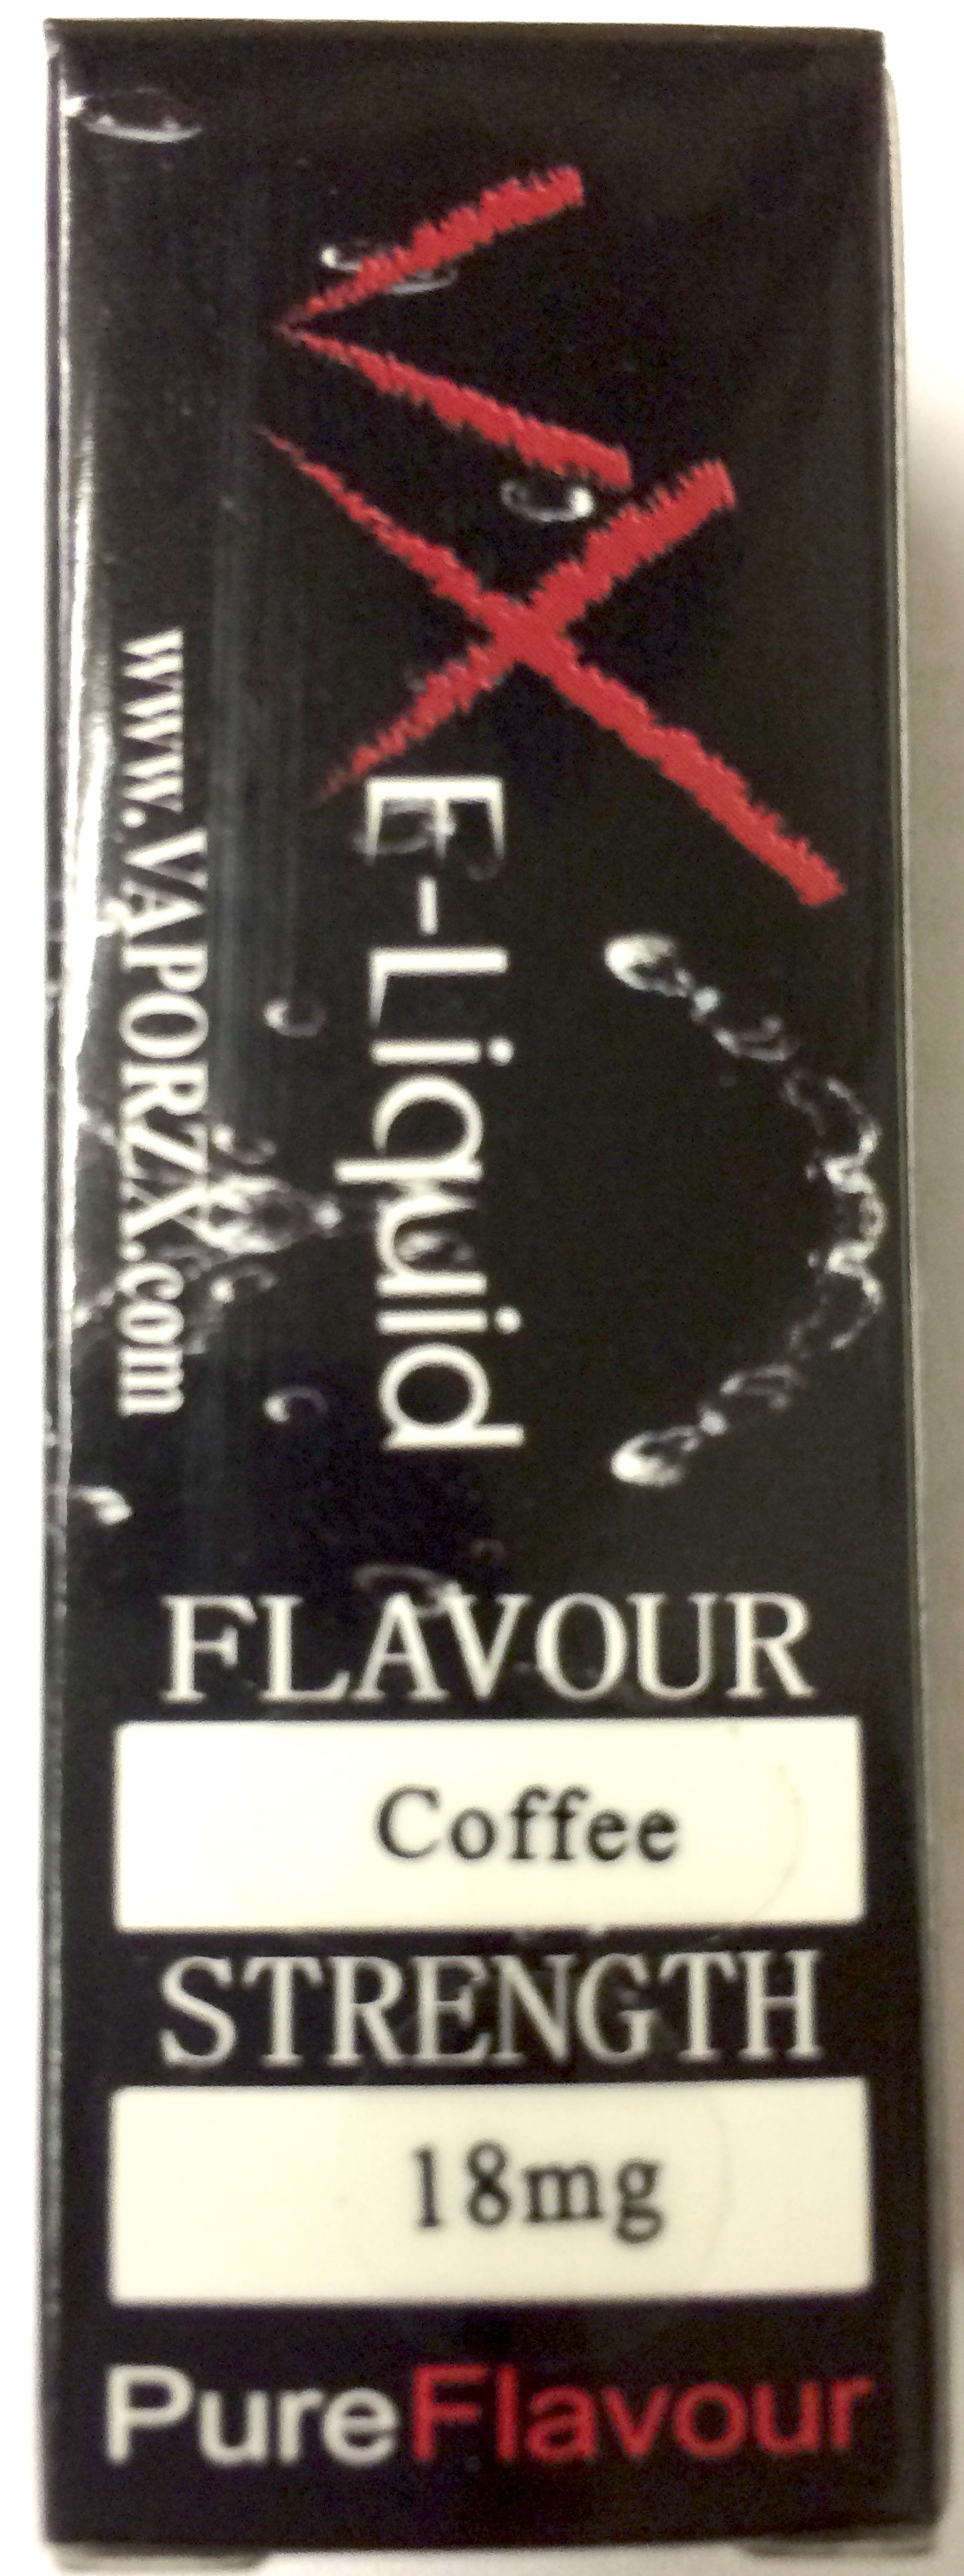 E-LIQUID HOOKAH COFFEE 18MG EACH